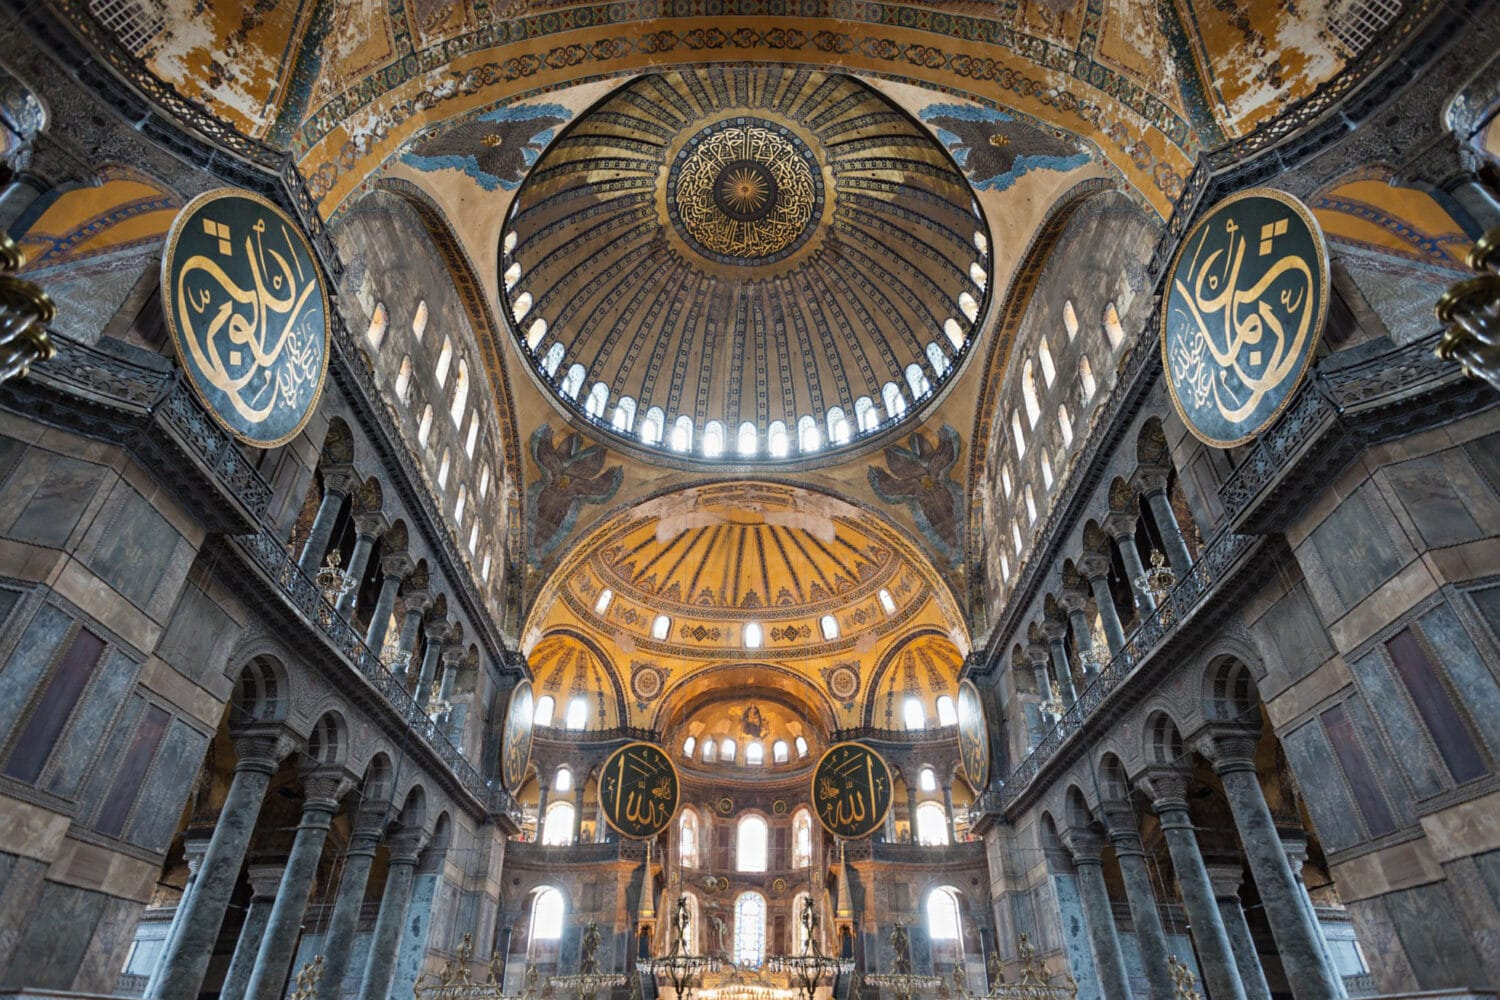 Hagia Sophia Istanbul: The Masterpiece of All Times